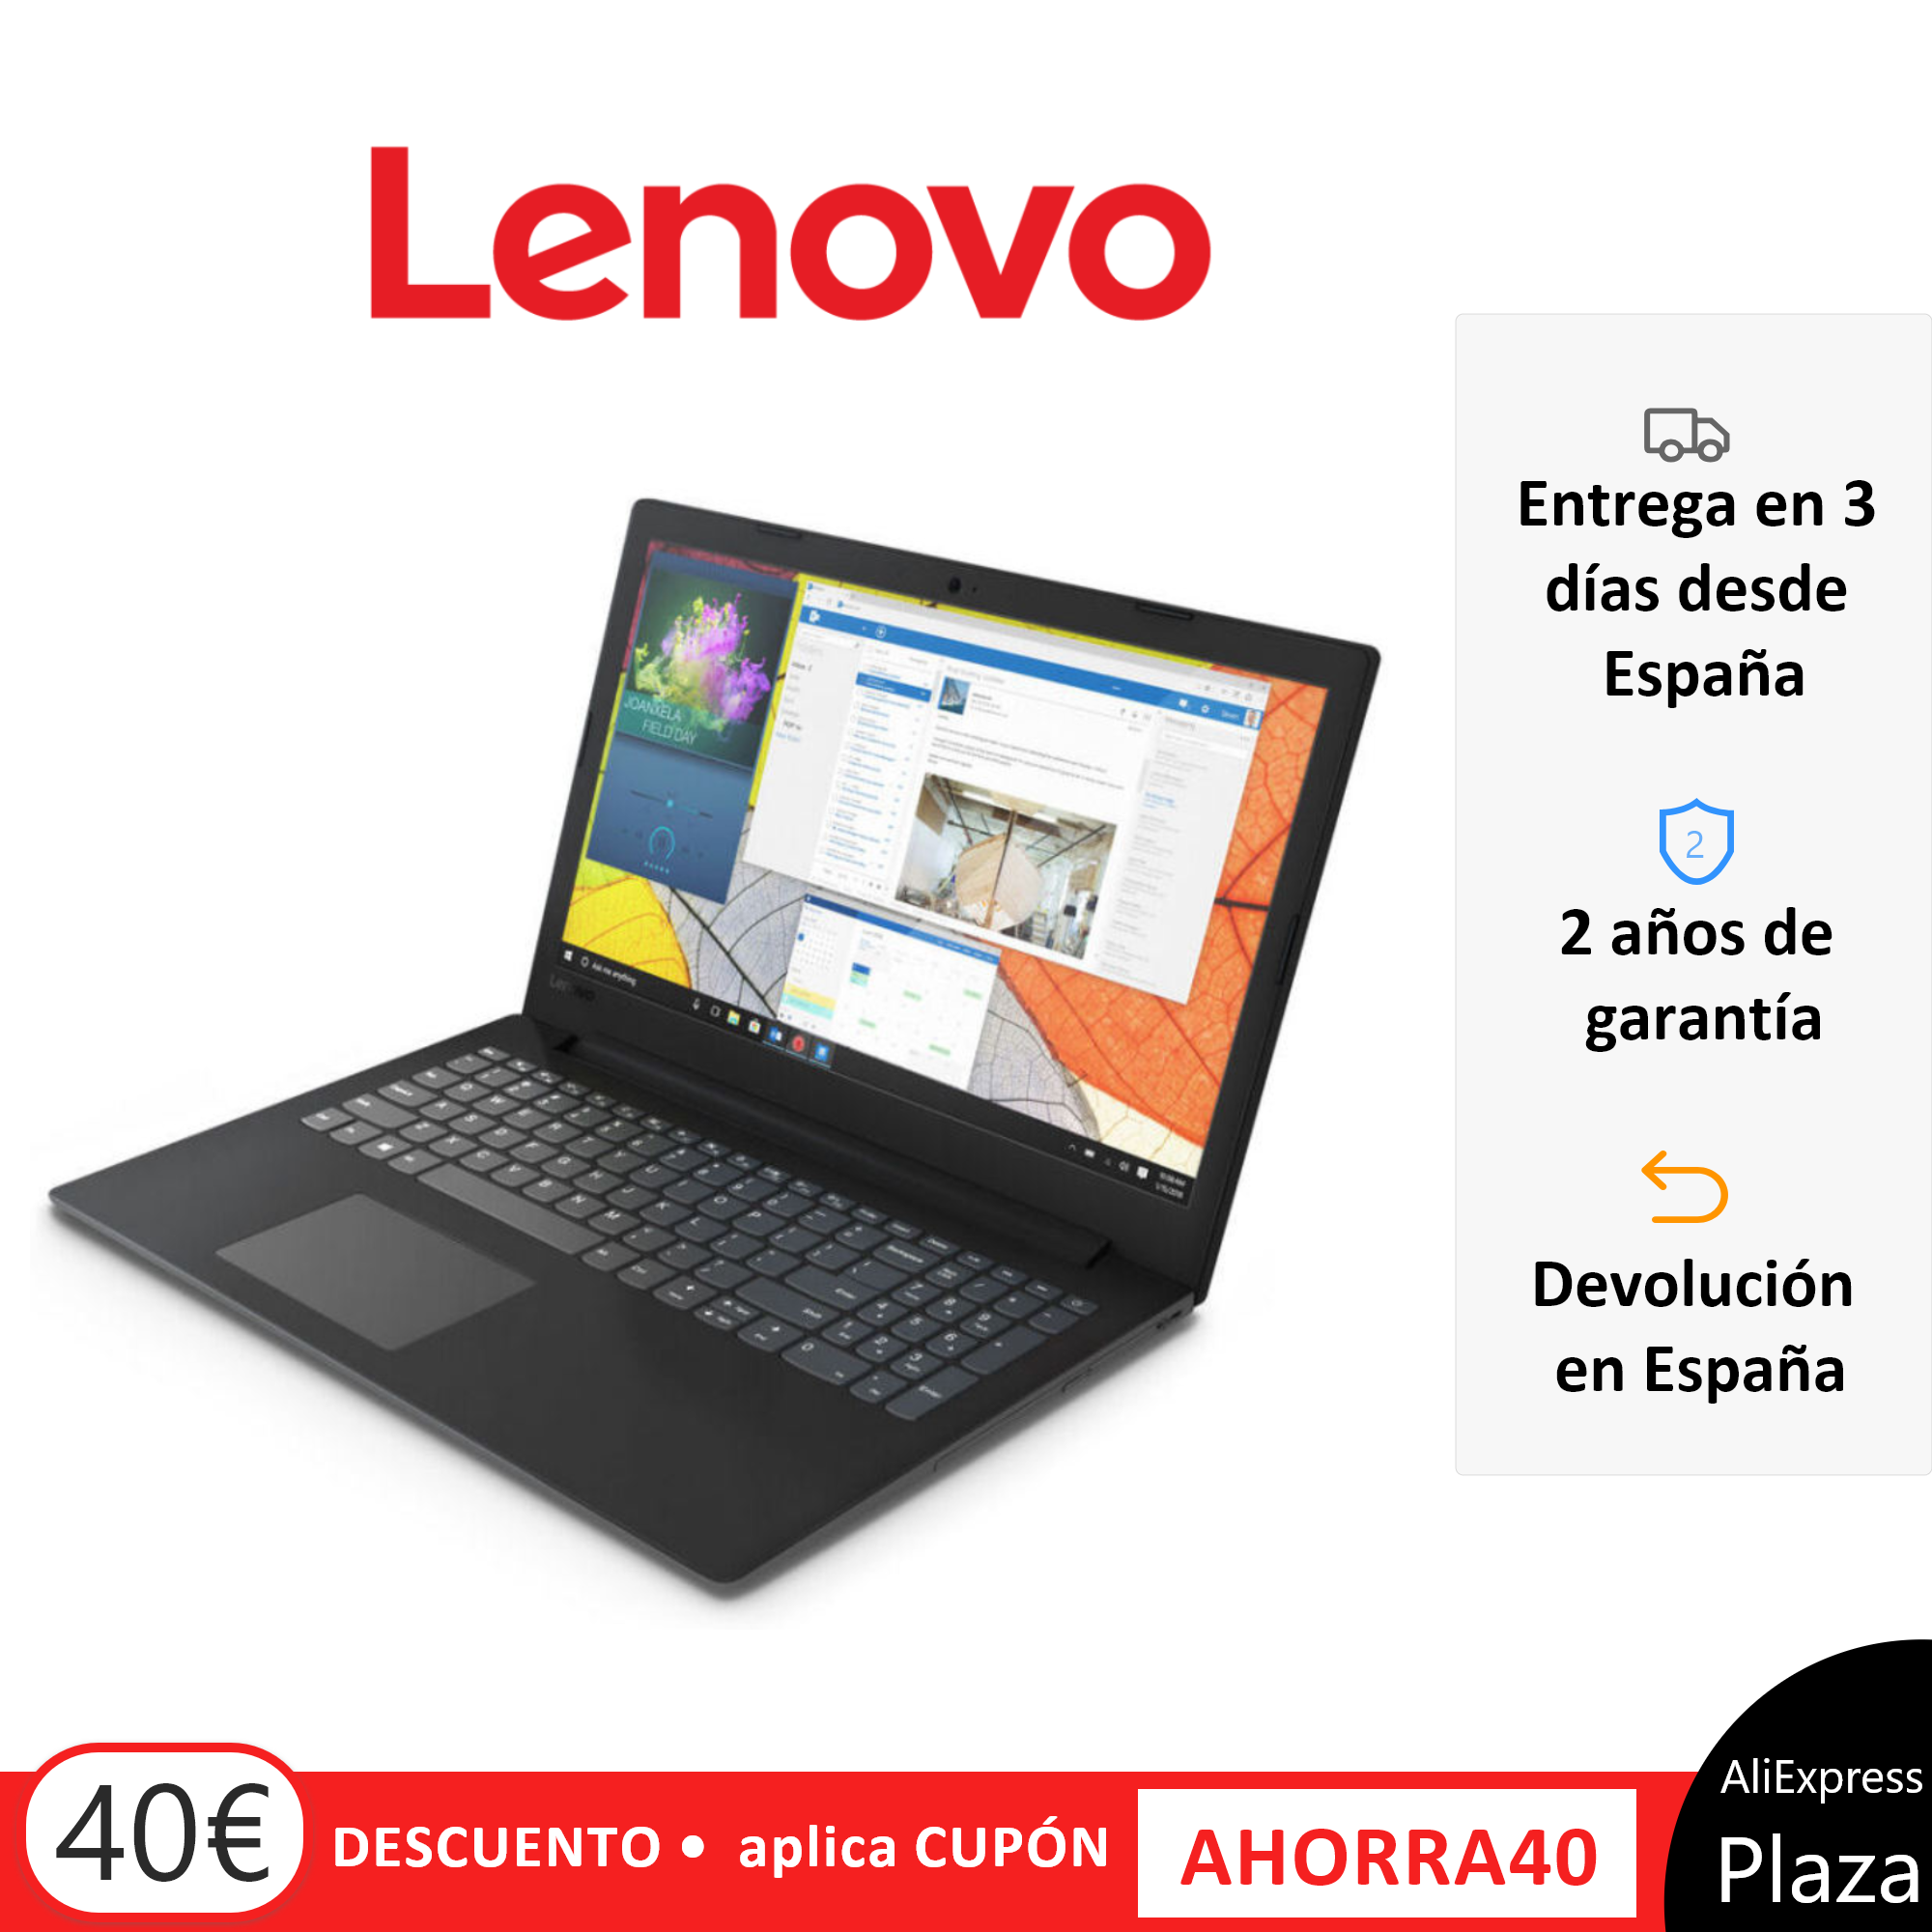 LAPTOP 15 ''-LENOVO V145-15AST-AMD A9-9425/8 GBGB/256 SSD/RADEON R5- windows 10 Home FHD Keyboard Spanish Dictionary image